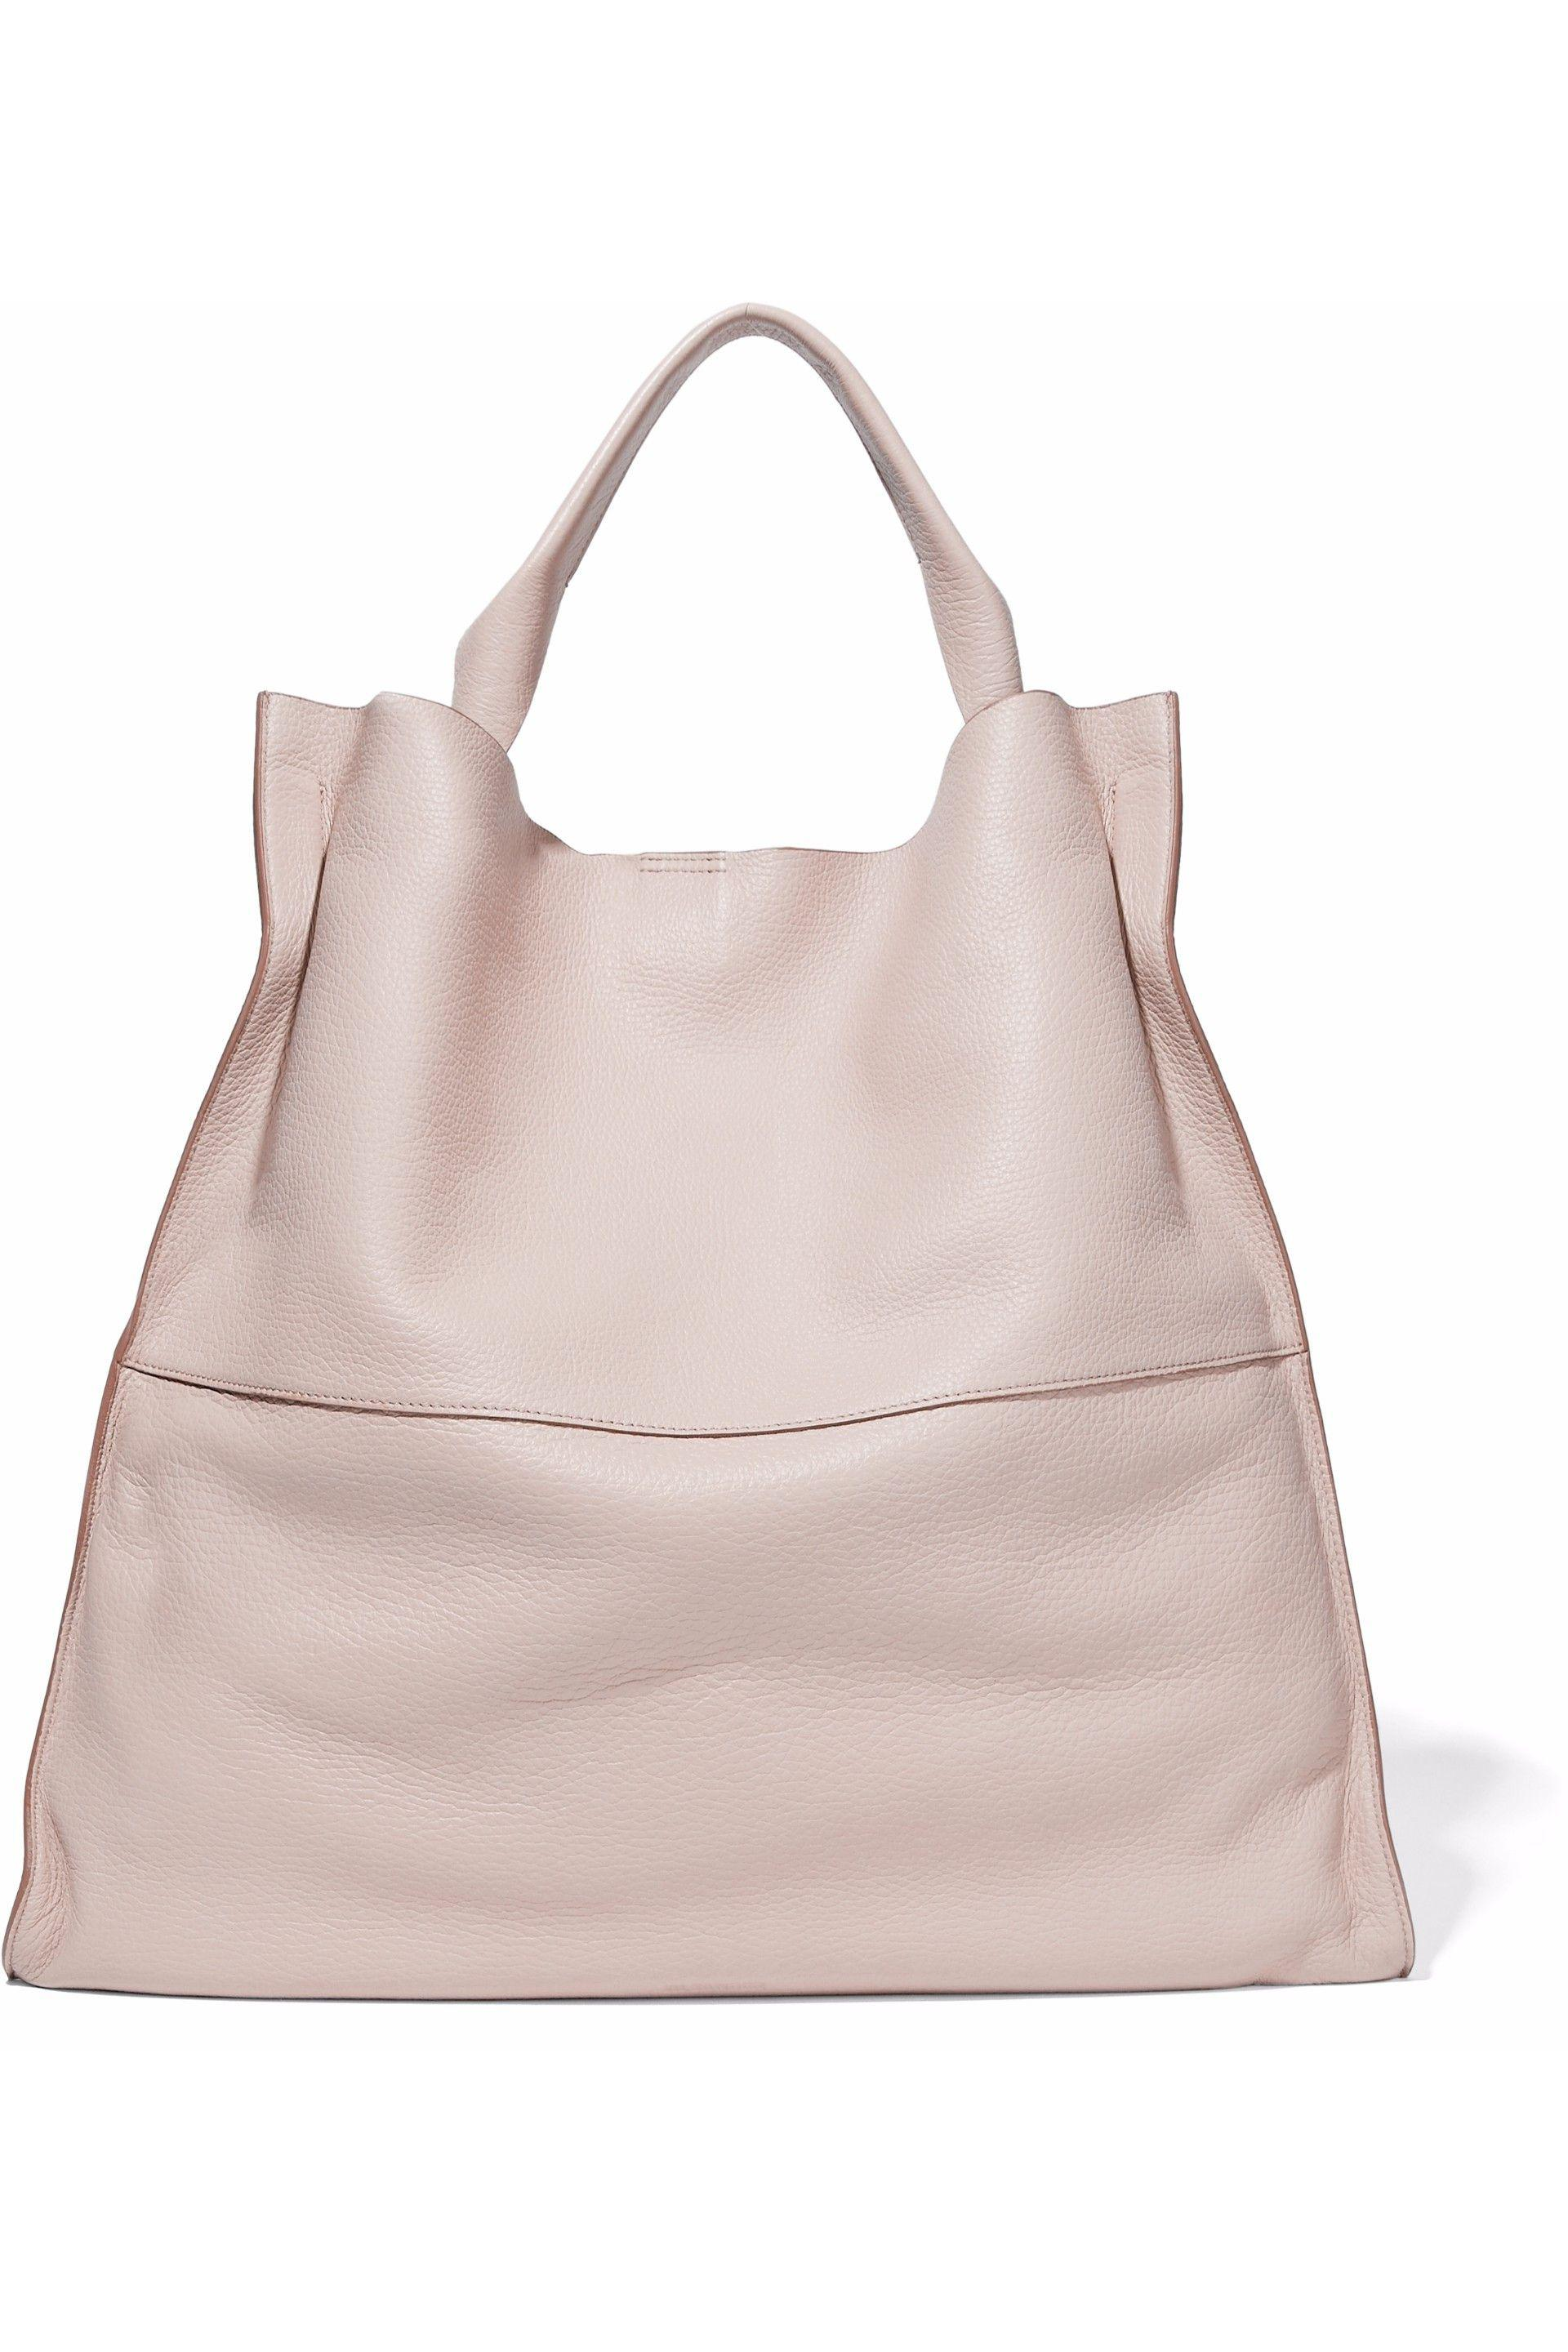 dab323d8a9 Jil Sander Totes in Pink - Lyst